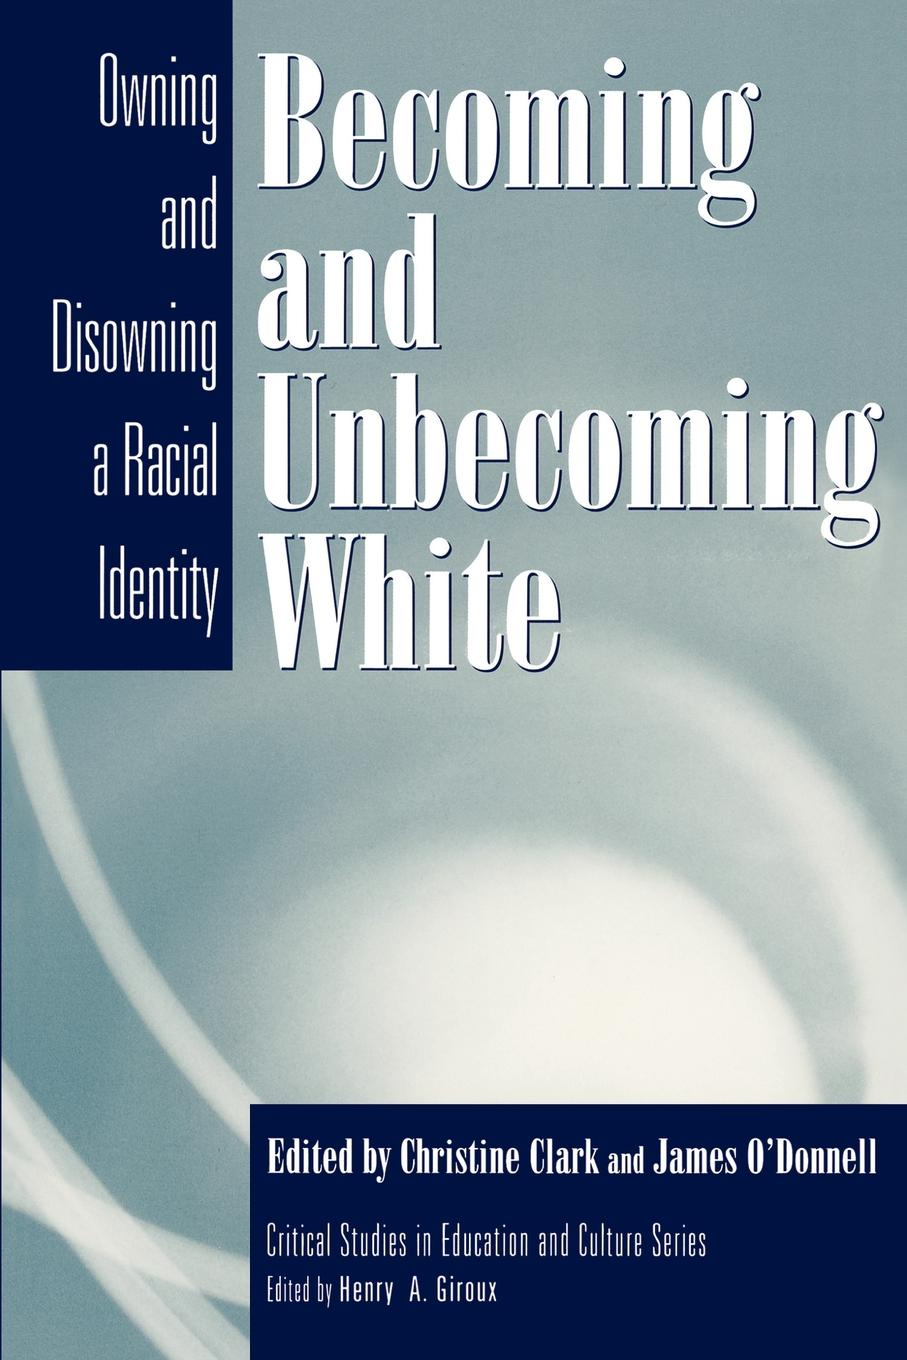 Becoming and Unbecoming White. Owning Disowning a Racial Identity